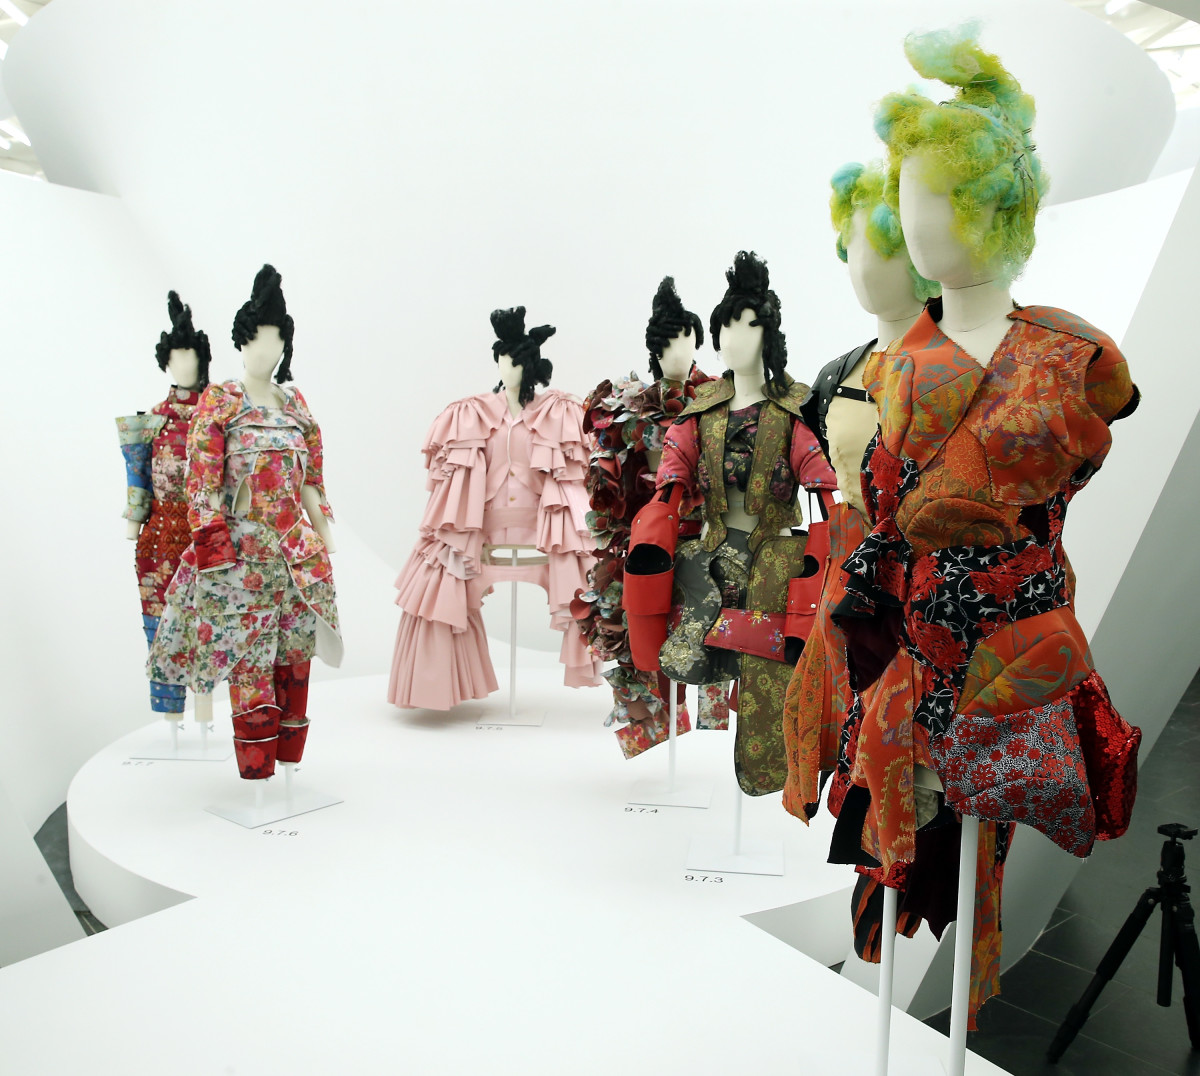 """Designs by Rei Kawakubo on display at the """"Rei Kawakubo/Comme des Garcons: Art Of The In-Between"""" at the Met. Photo: Jemal Countess/Getty Images"""